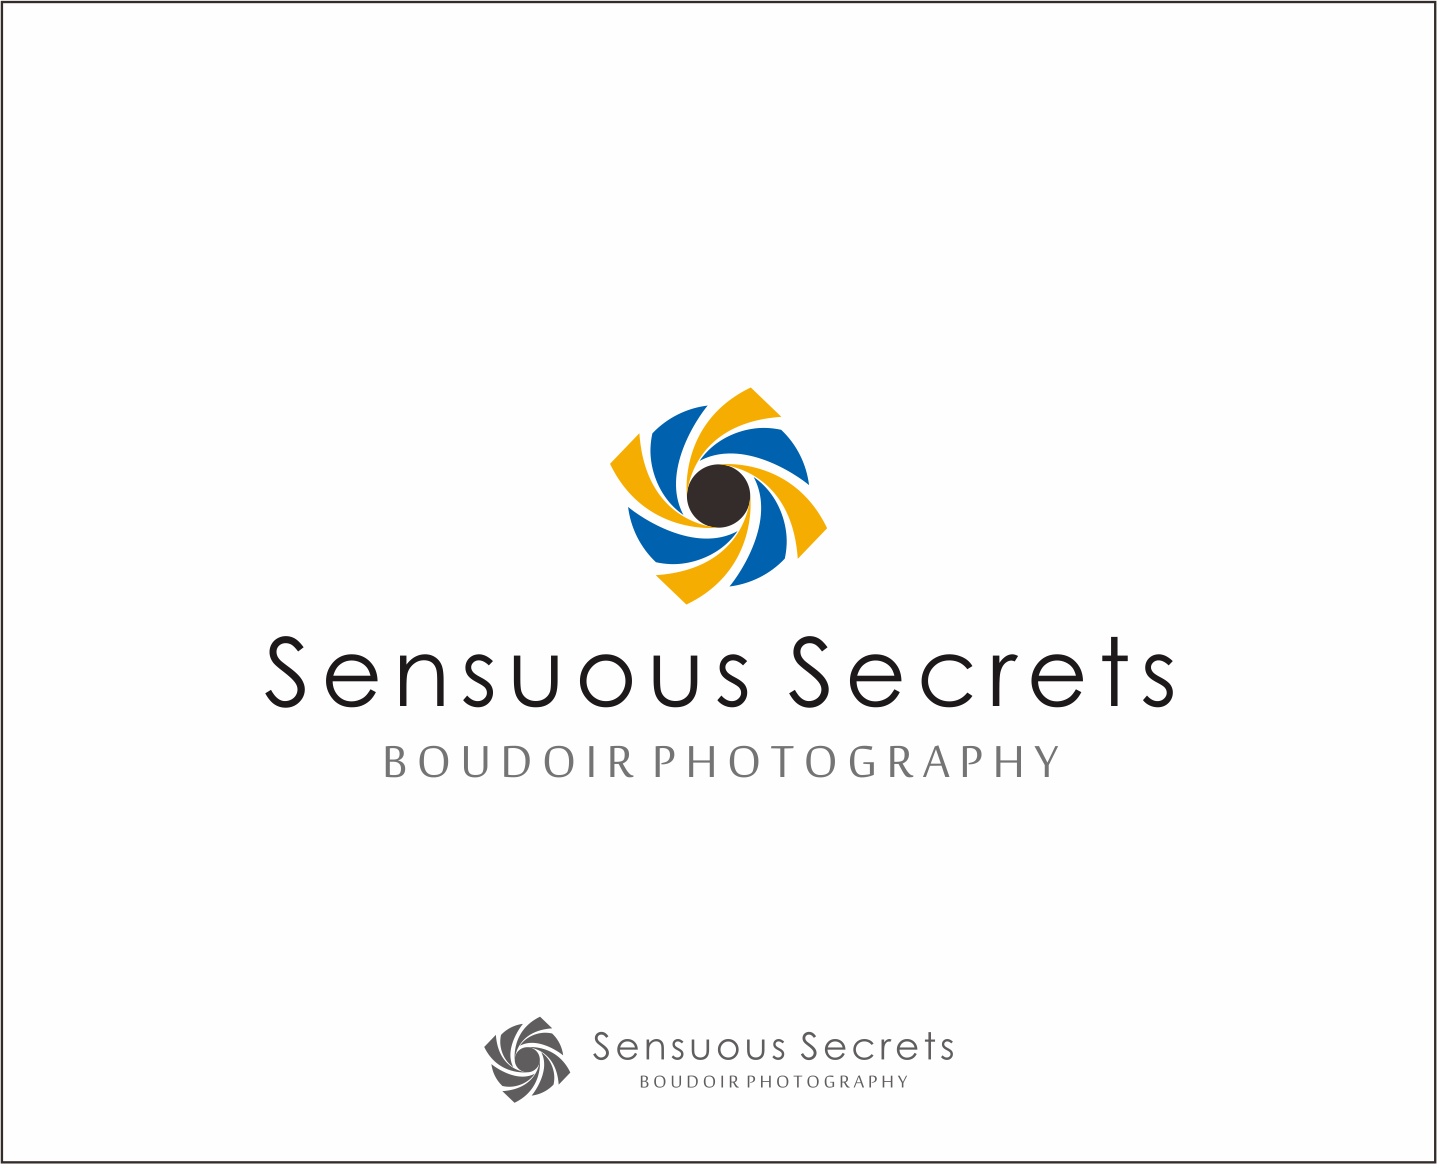 Logo Design by Armada Jamaluddin - Entry No. 111 in the Logo Design Contest Artistic Logo Design for Sensuous Secrets Boudoir Photography.